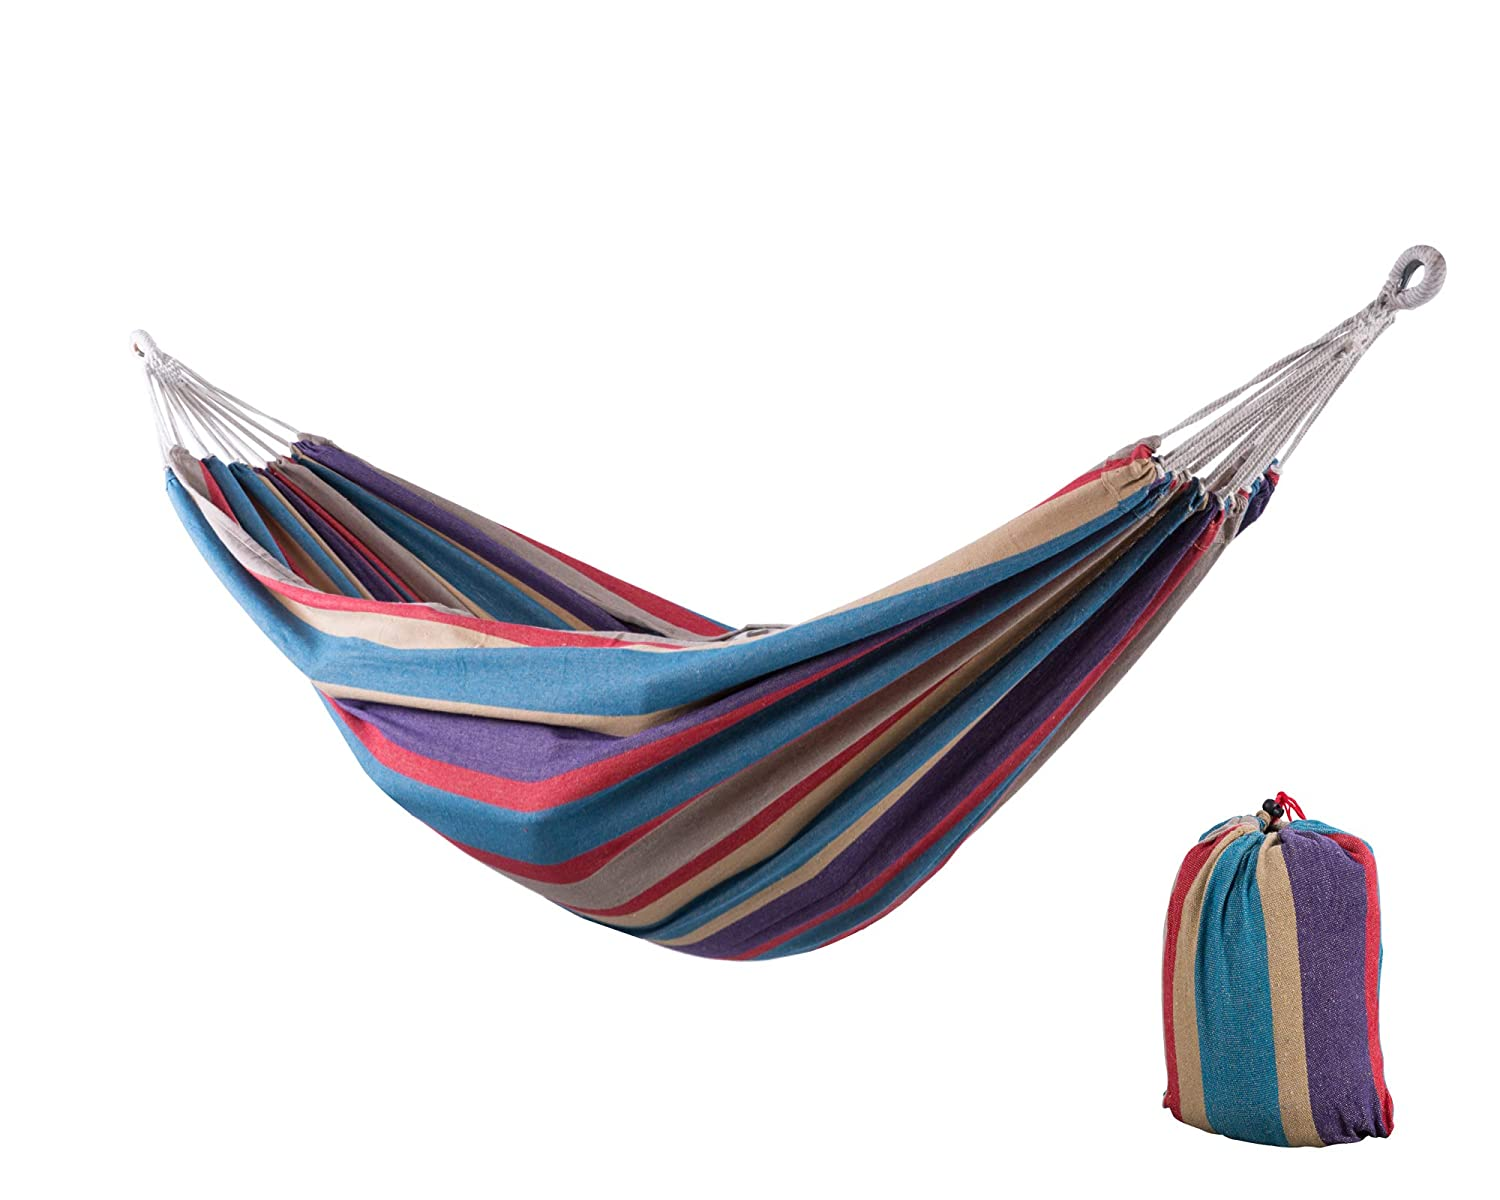 SUNCREAT 12ft Double Brazilian Wide Hammock Cotton Fabric Travel Camping Hammock with 2 Person for Indoor or Outdoor-Tropical